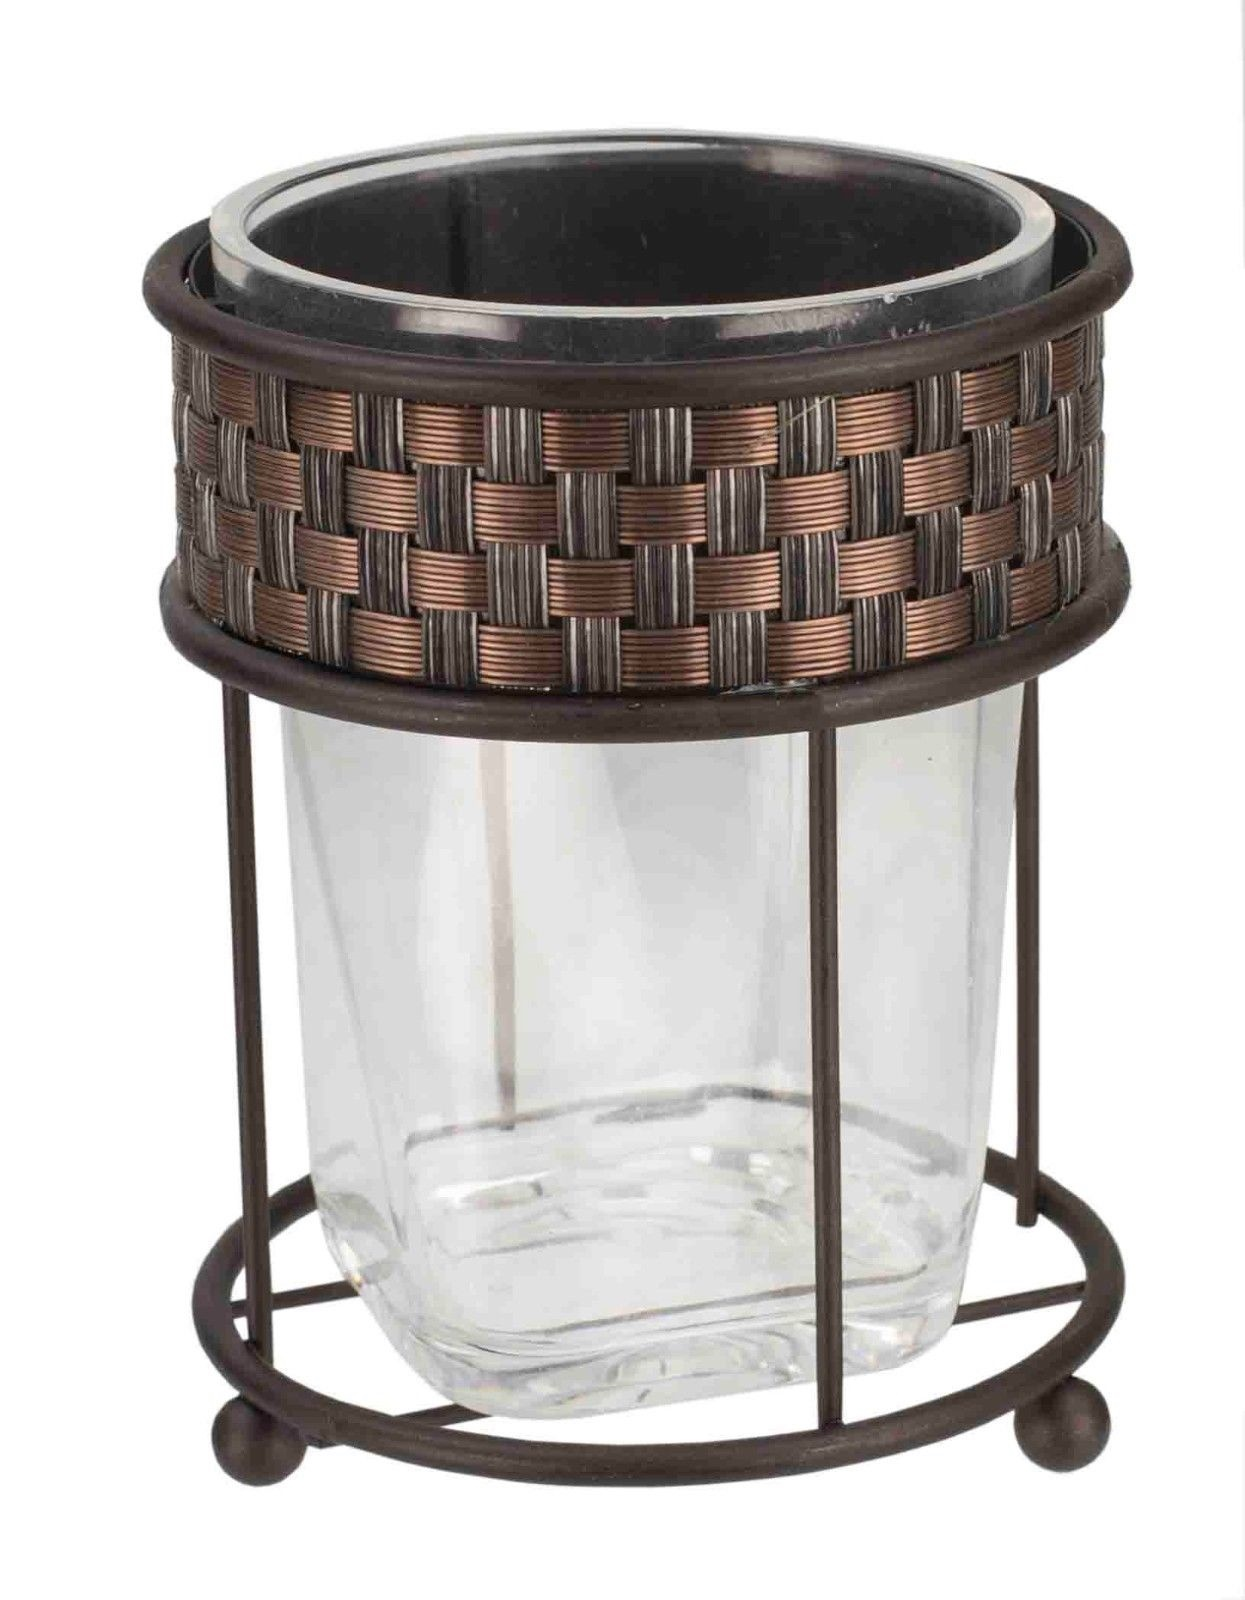 BA41236 Home Basics NEW Basket Weave Bronze Bathroom Tumbler Cup